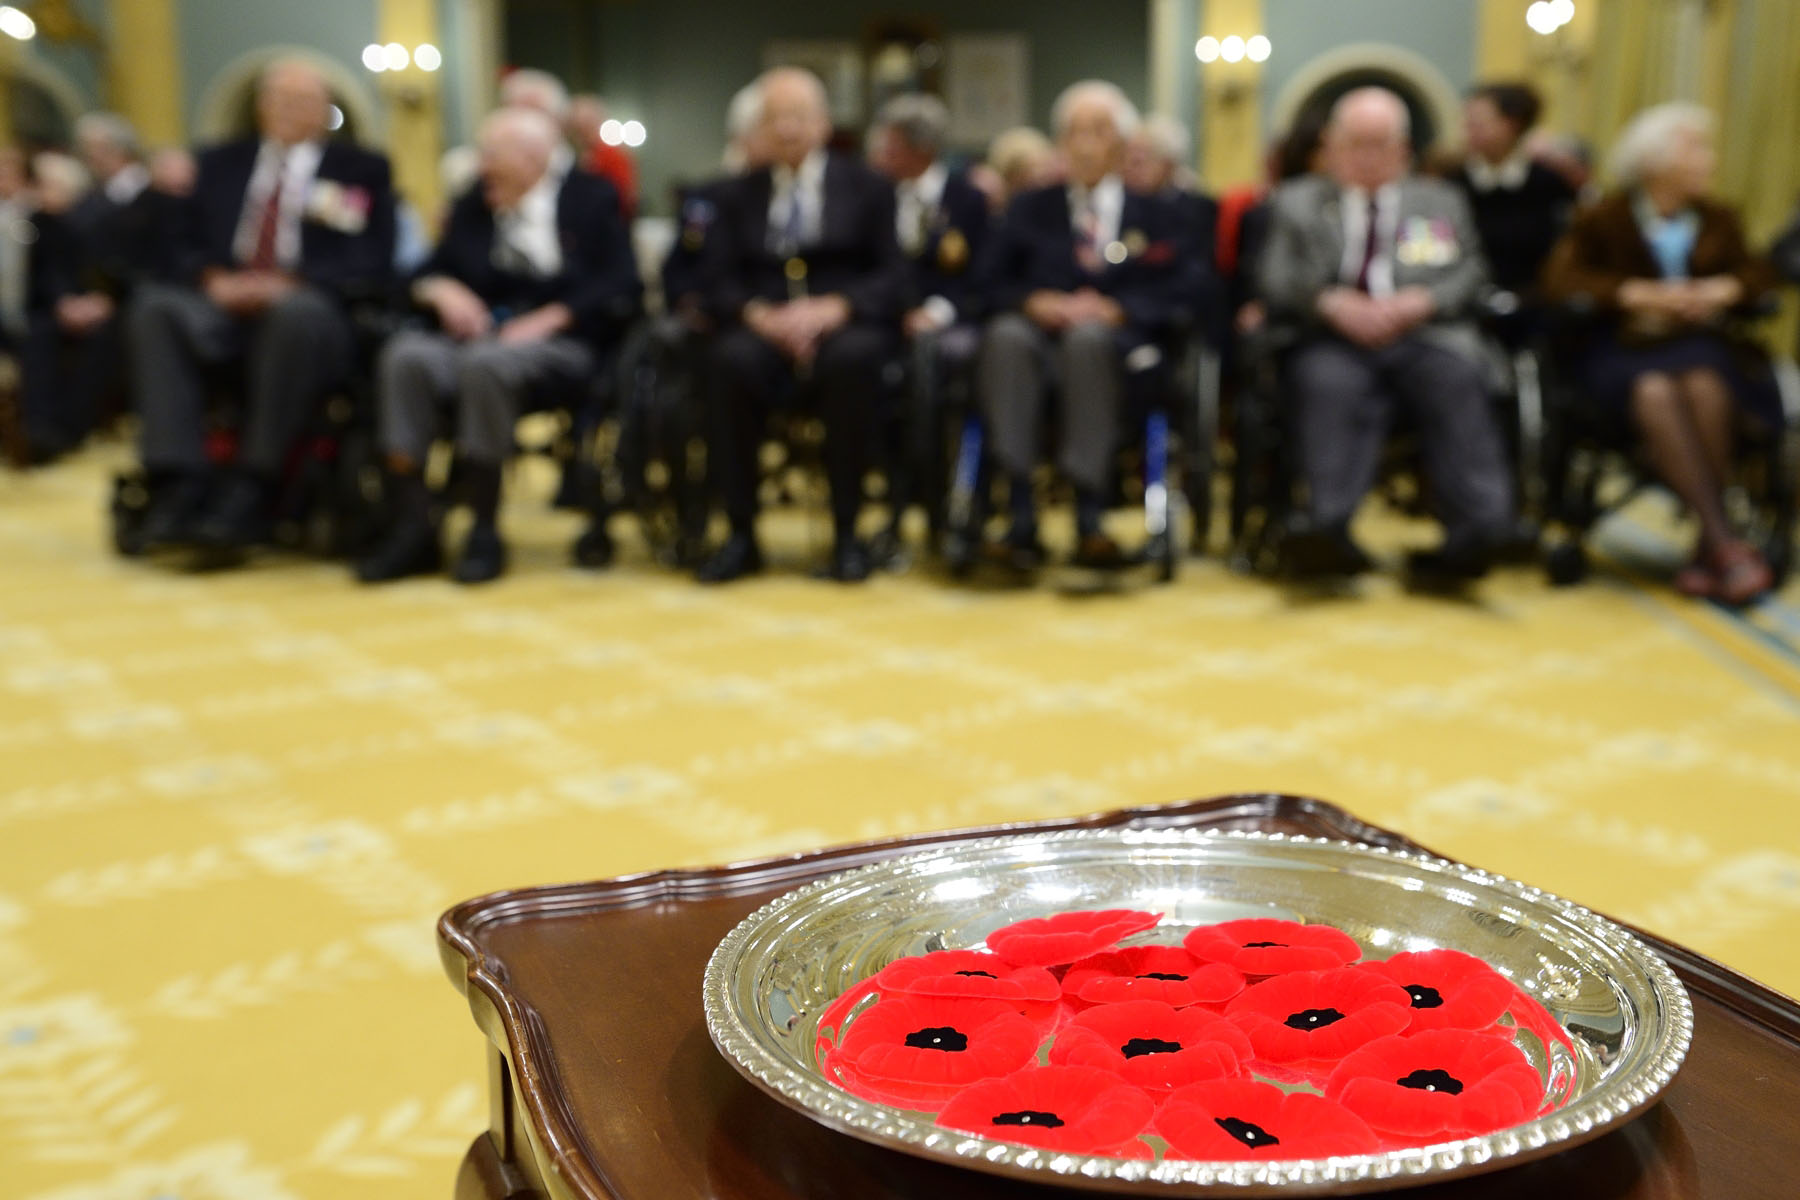 His Excellency the Right Honourable David Johnston, Governor General and Commander-in-Chief of Canada and patron of The Royal Canadian Legion, hosted the 2016 National Poppy Campaign ceremony at Rideau Hall.